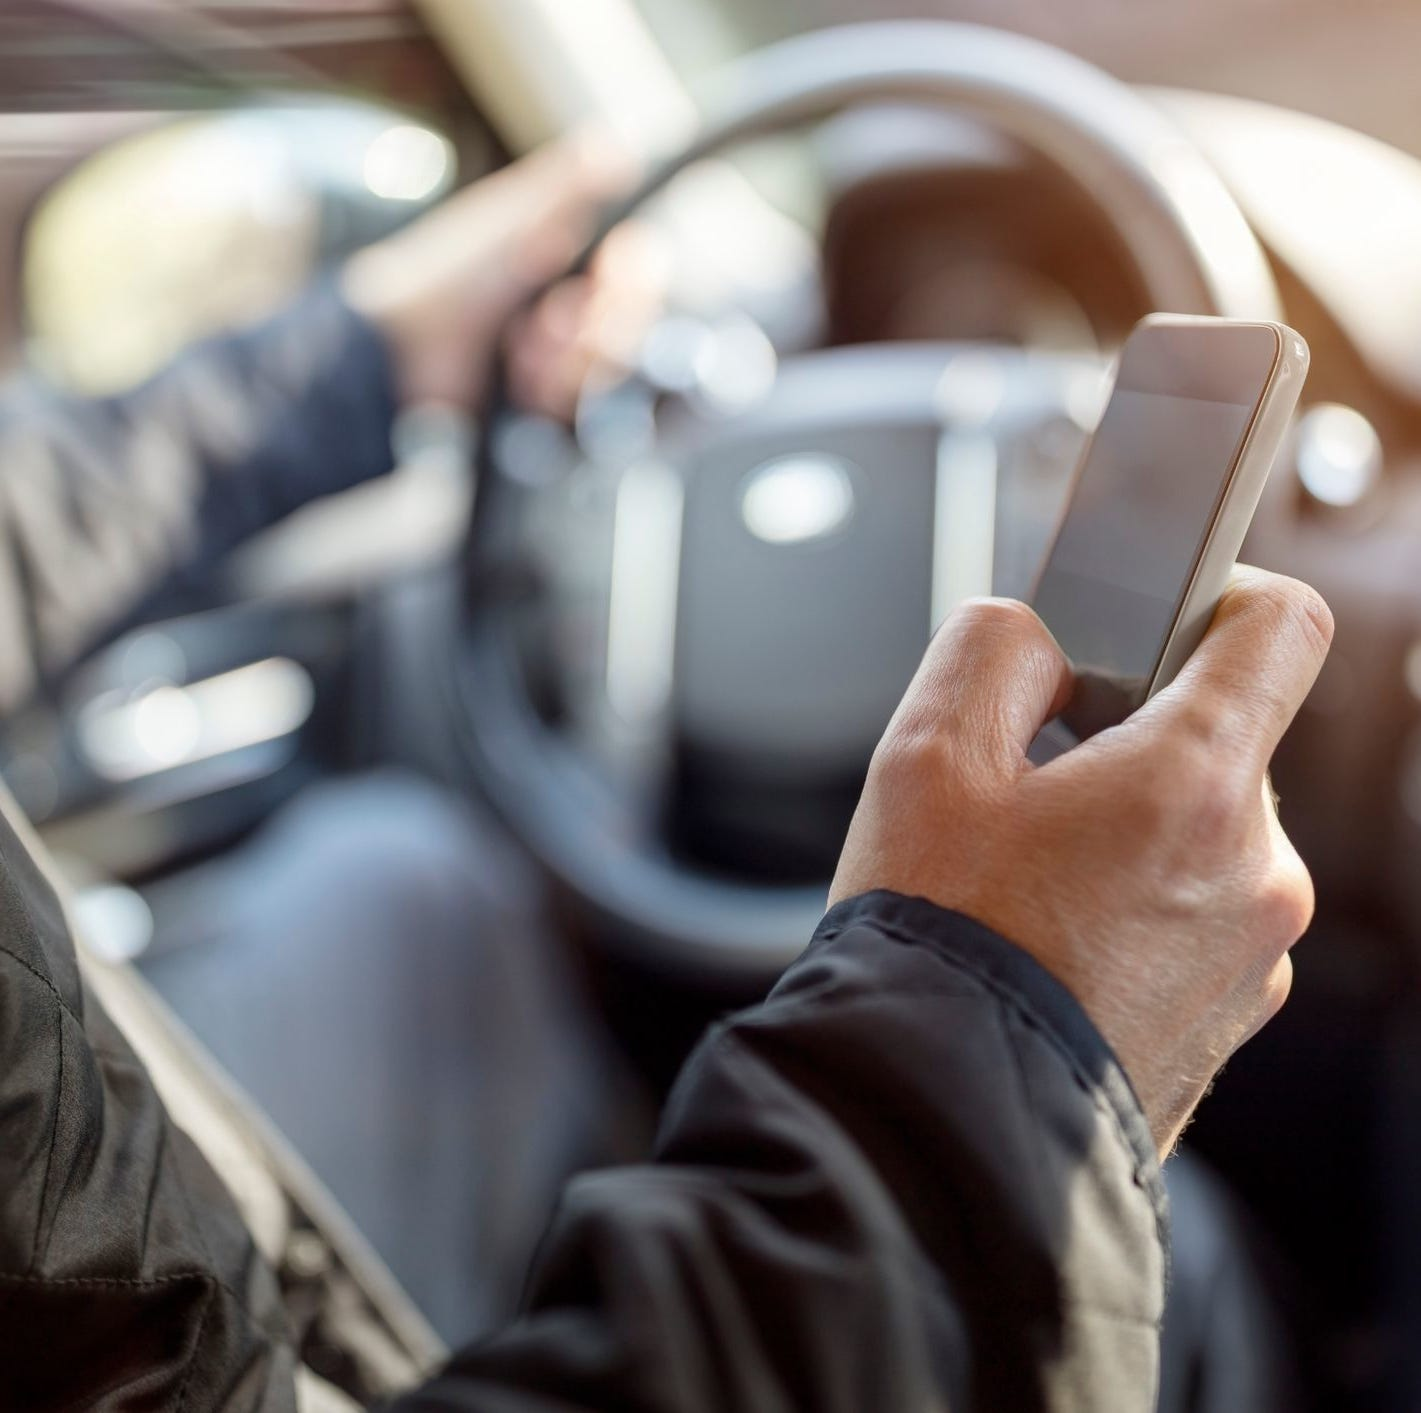 It may soon be illegal in Tennessee to use a hand-held cellphone while driving